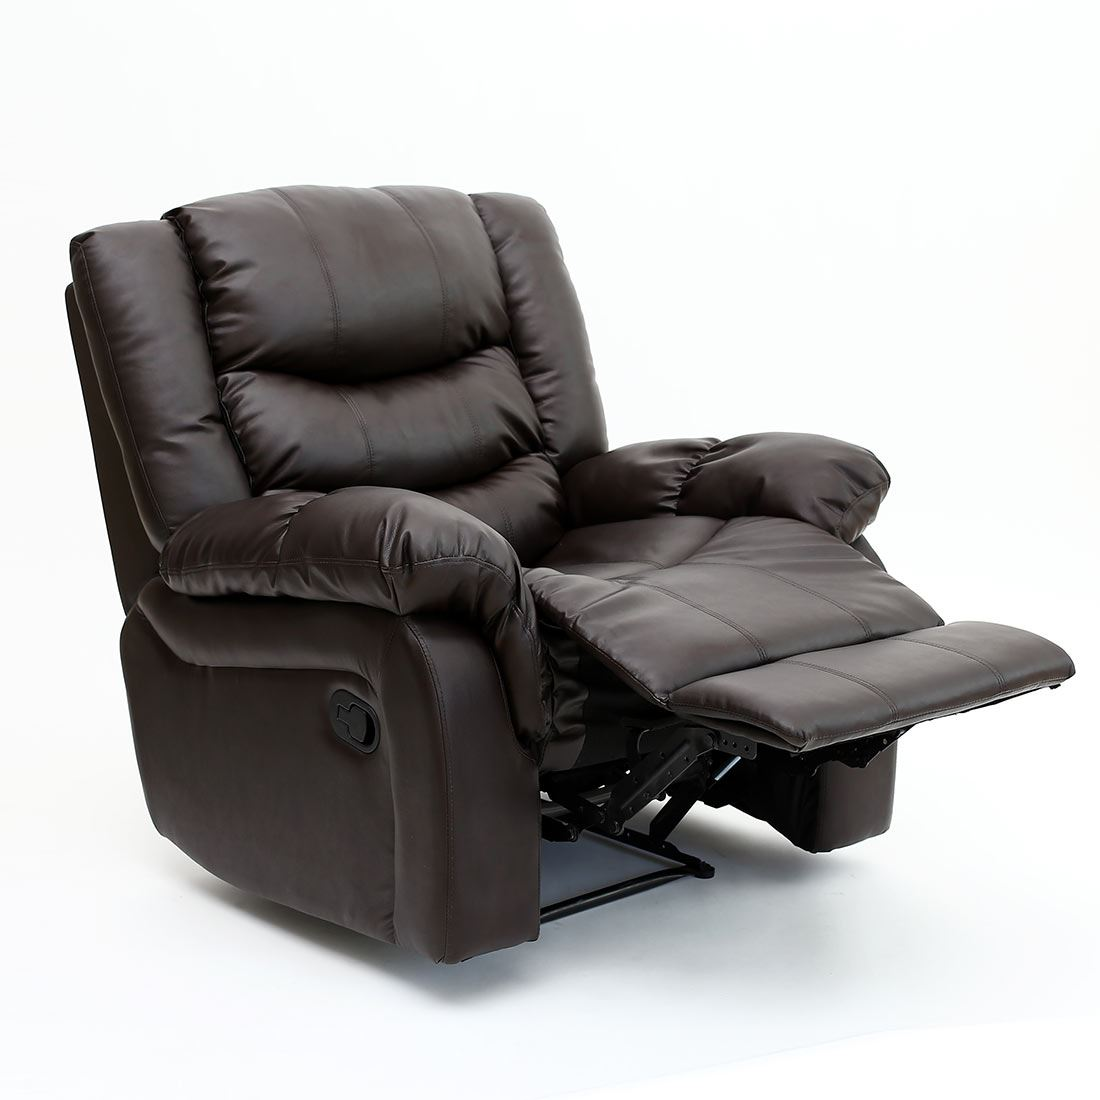 reclining gaming chair office buy seattle leather recliner armchair sofa home lounge